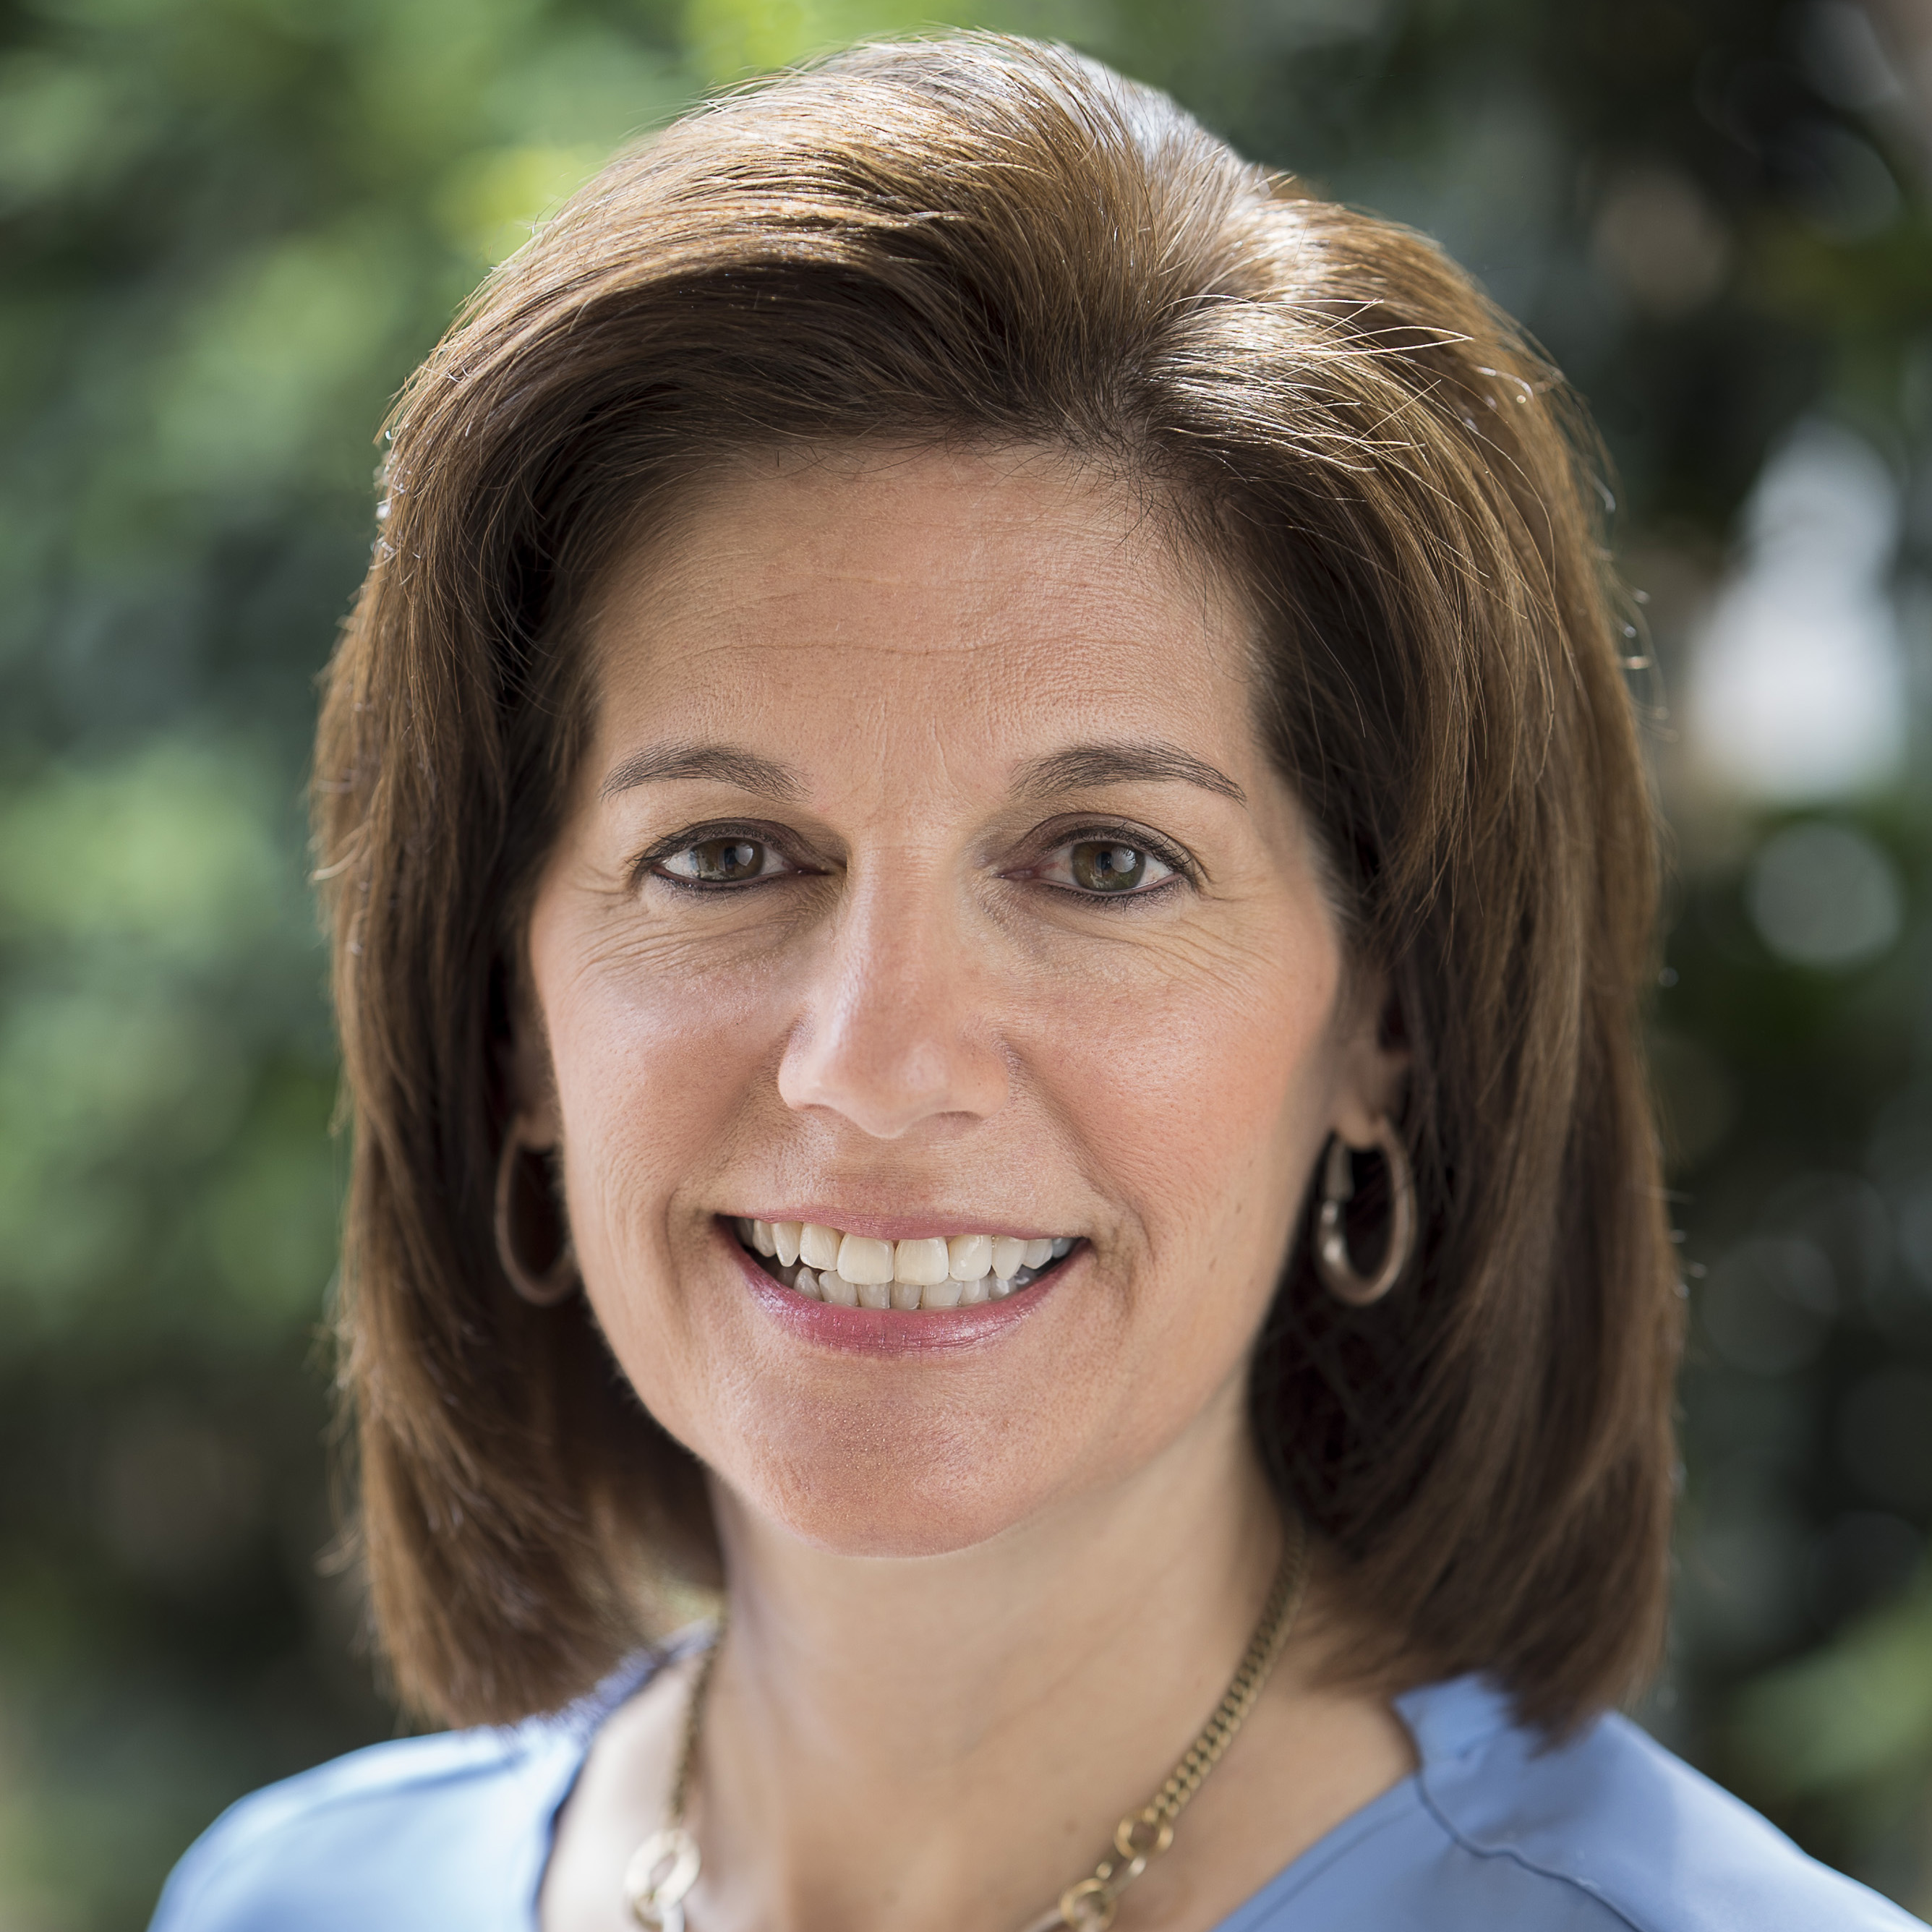 Catherine Cortez Masto - U.S. Senator from Nevada